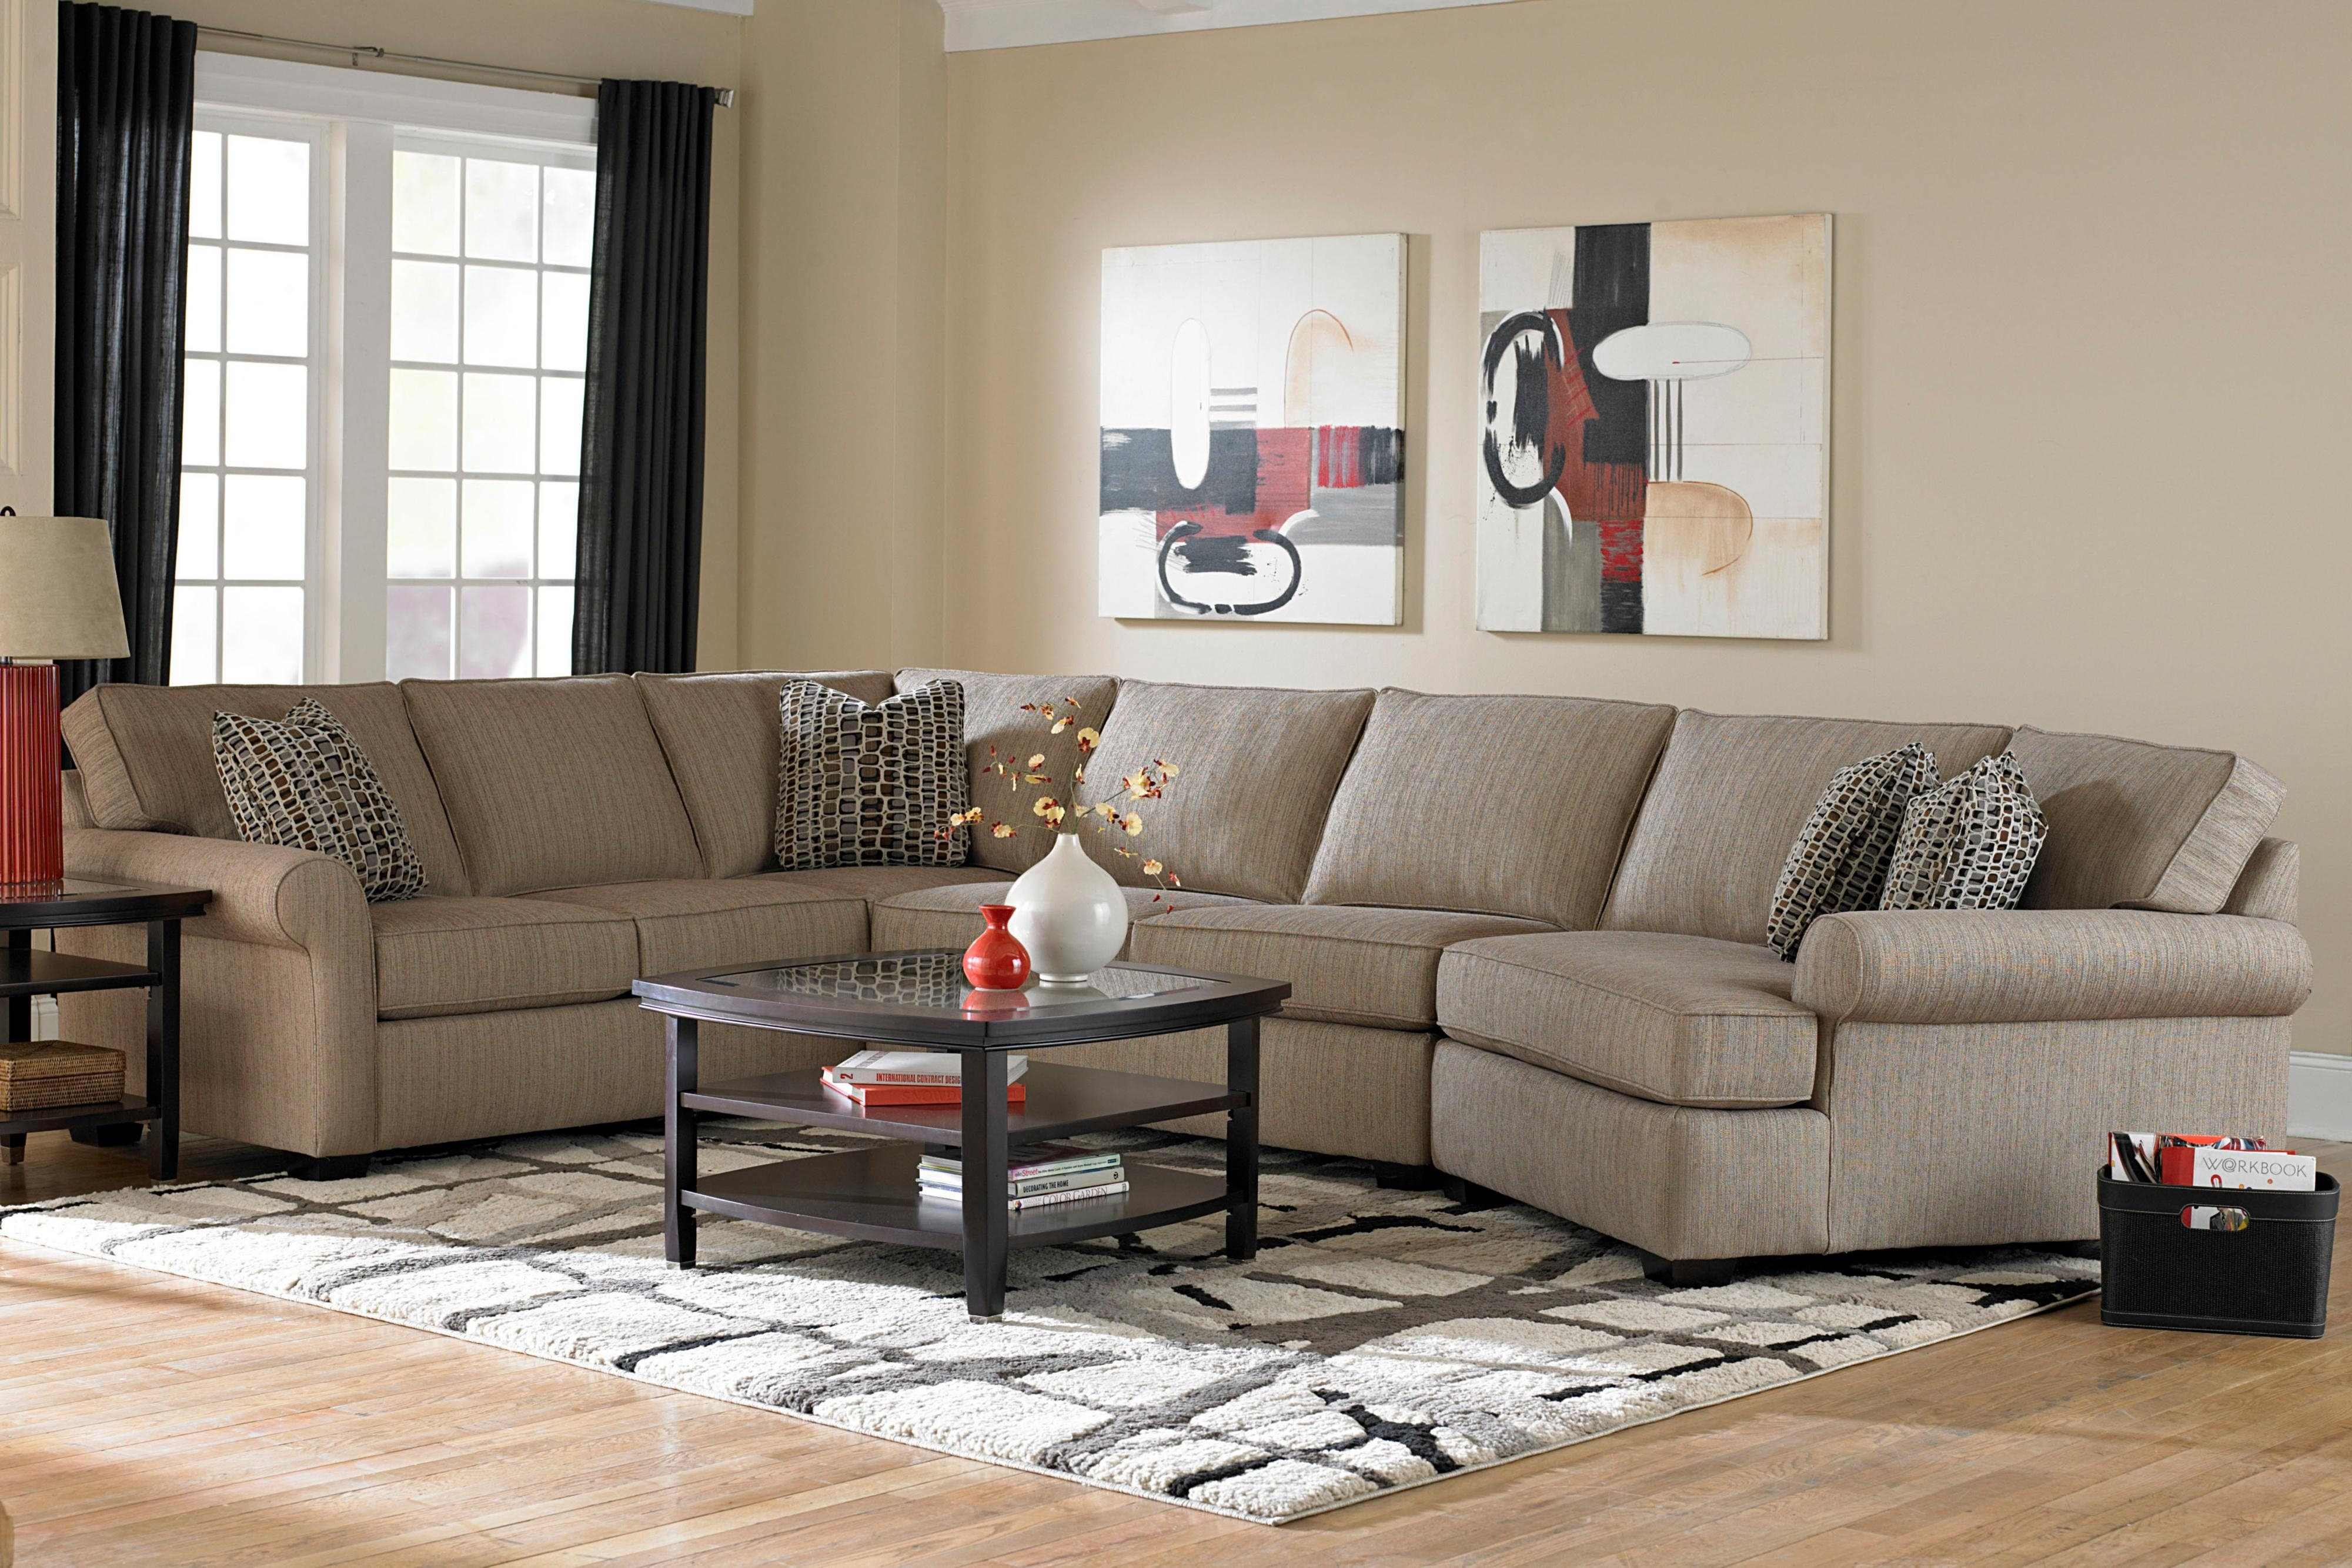 Broyhill Furniture Ethan Transitional Sectional Sofa With Right Intended For Evansville In Sectional Sofas (Image 3 of 10)